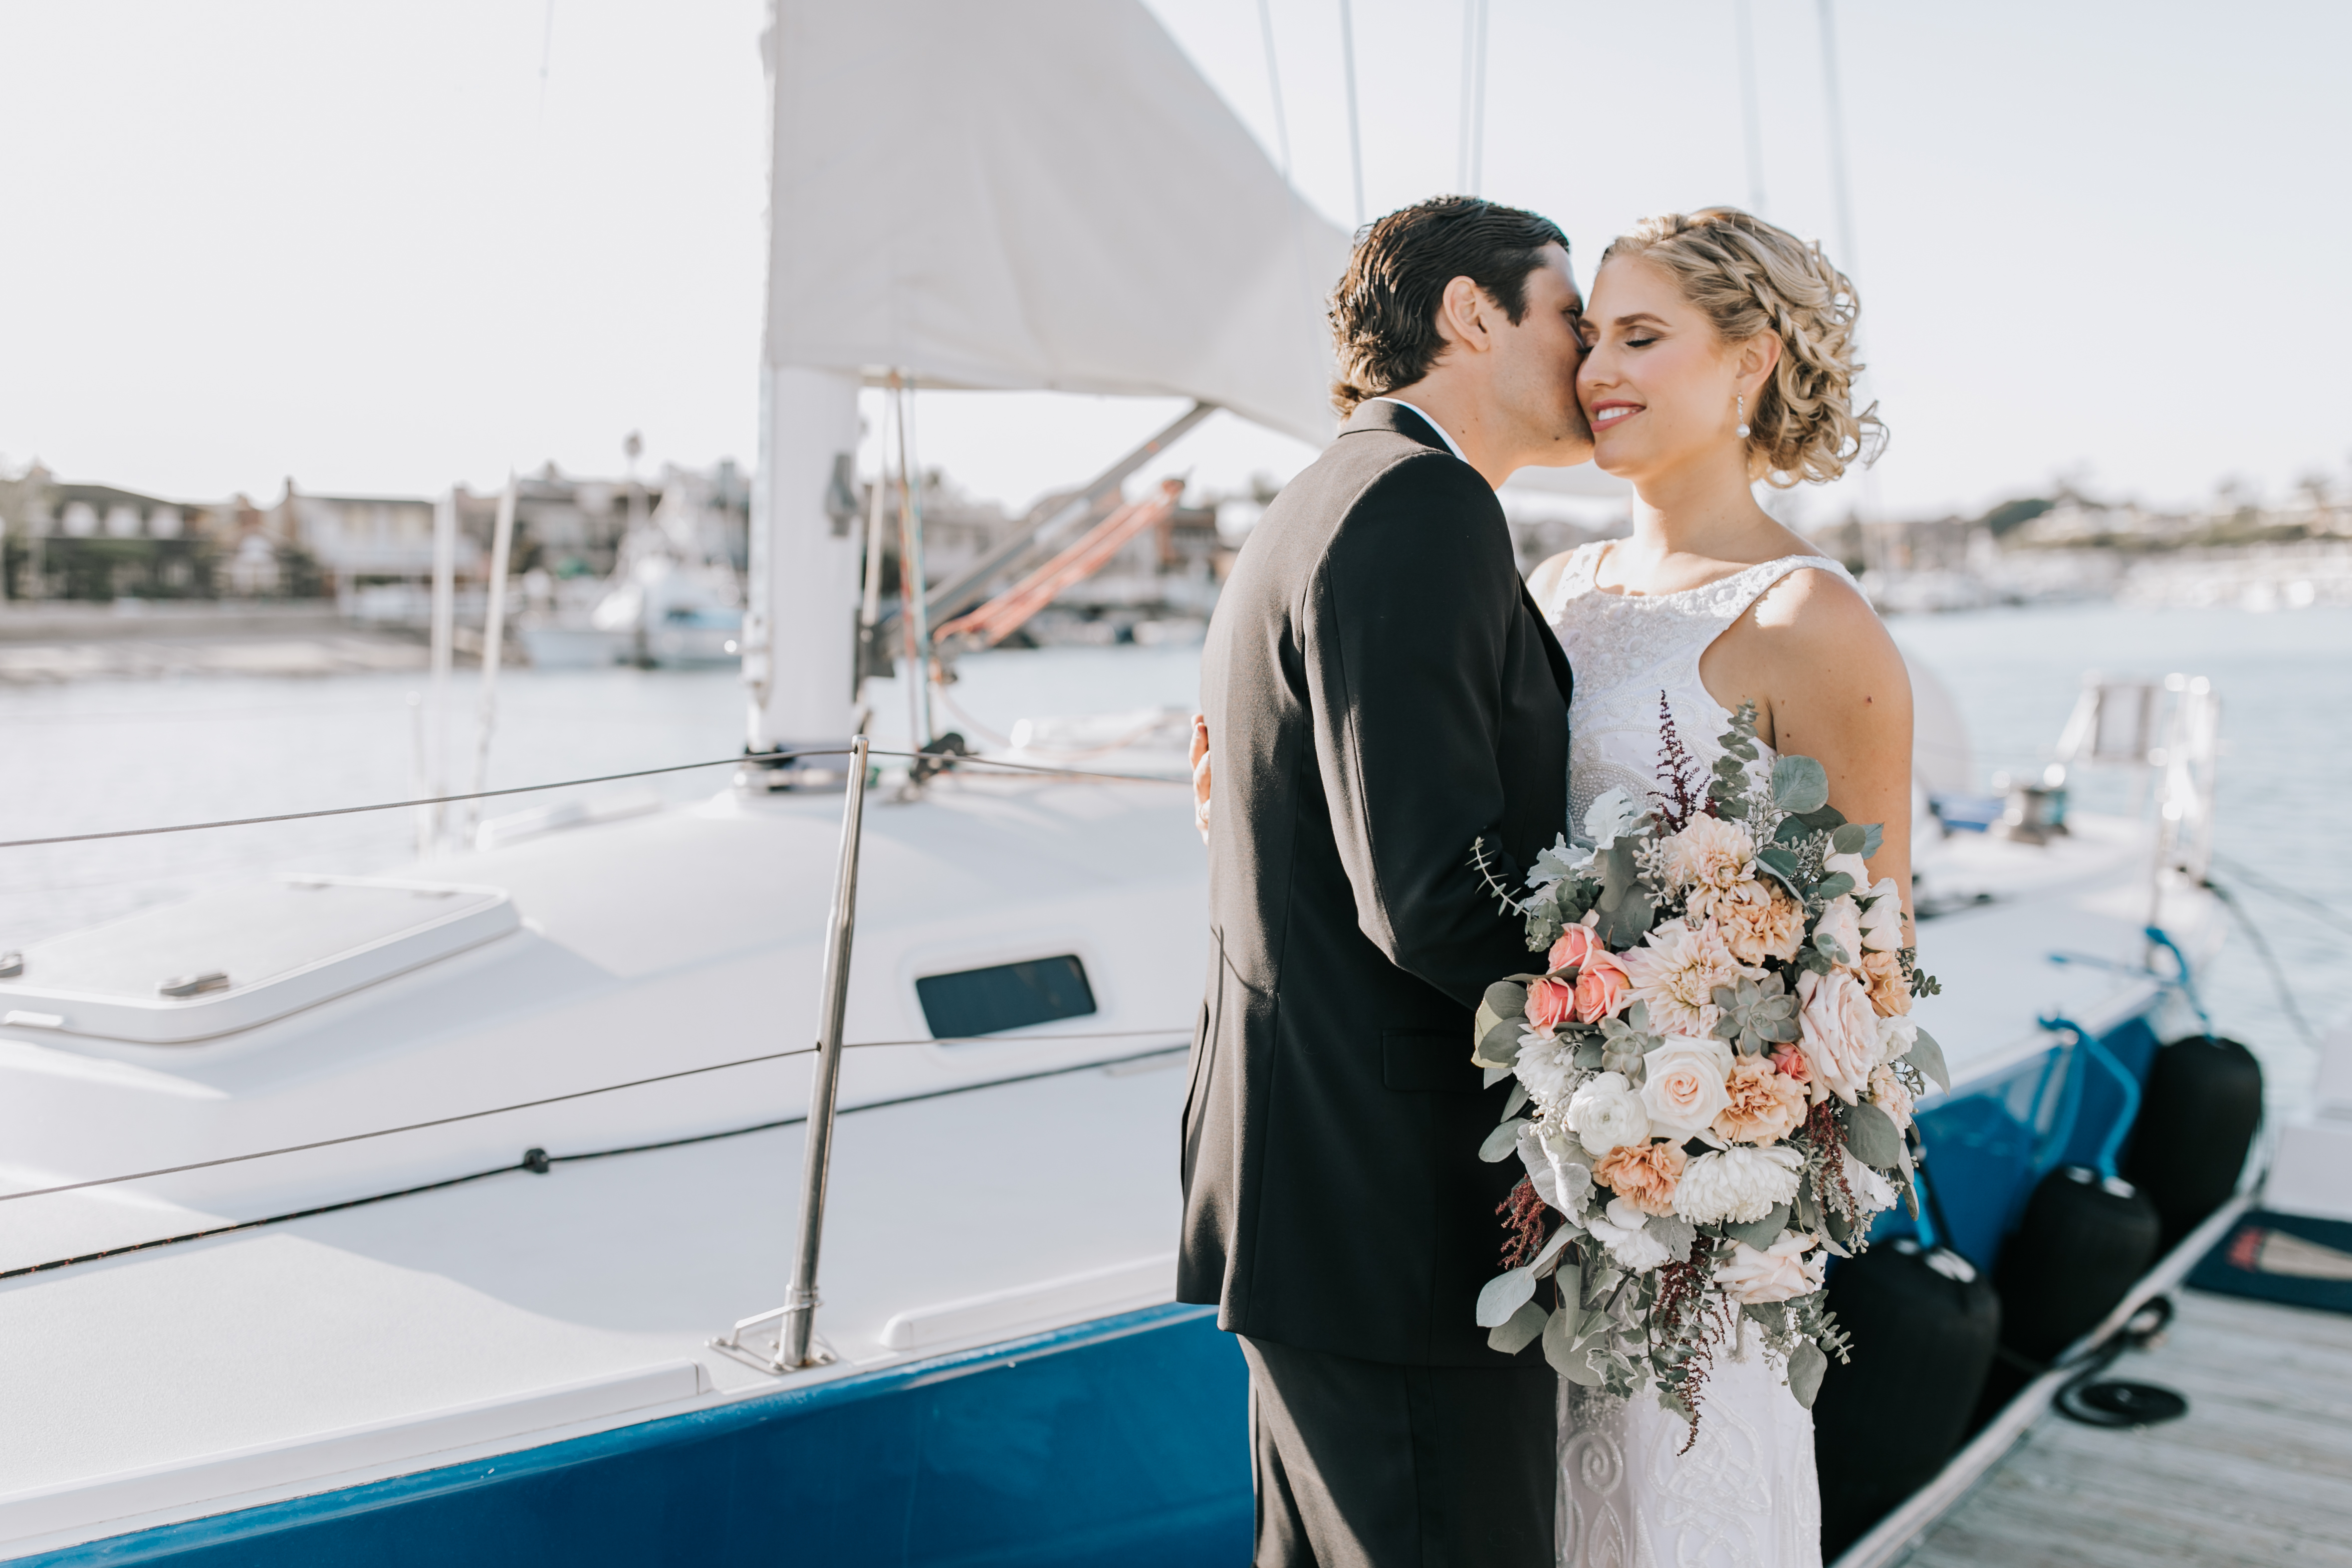 With Flourish Wedding Flowers - A dusty beach wedding of blushes, roses, and sailboats